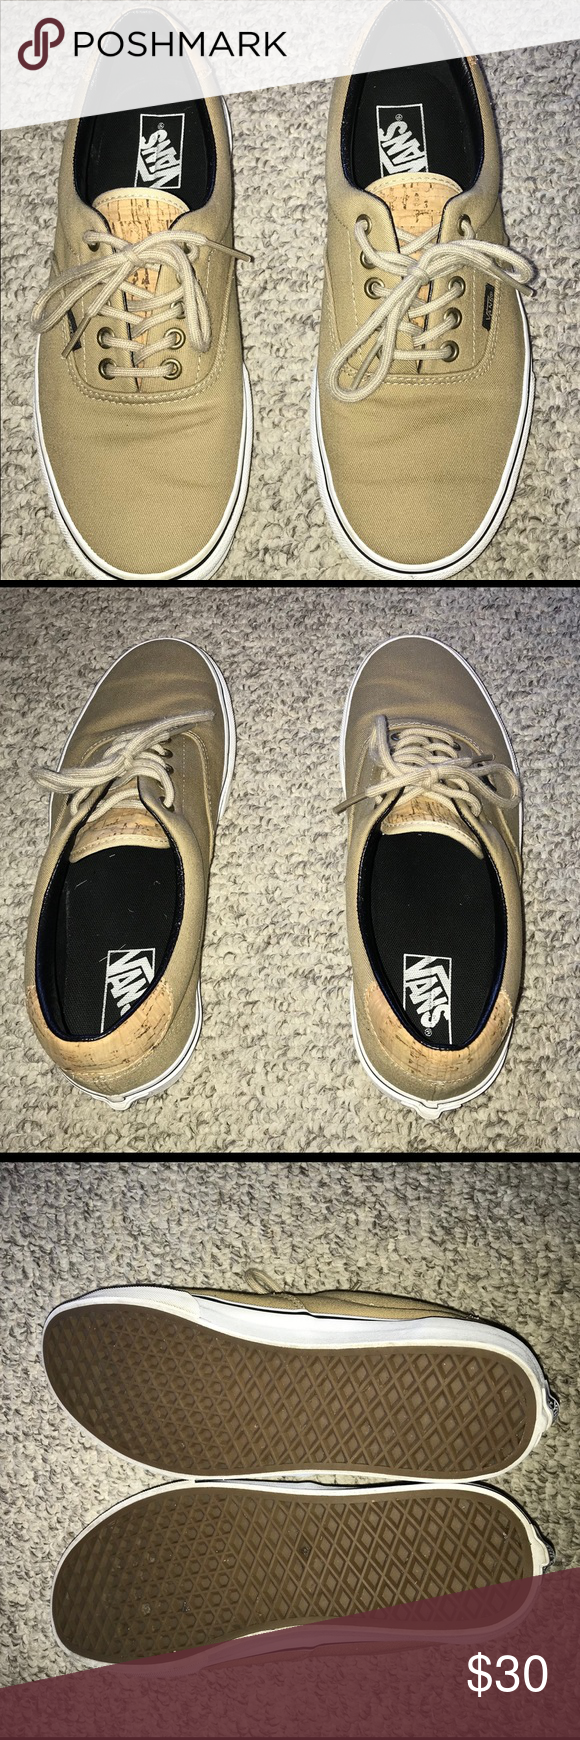 175c5d35813fc0 Vans Unisex Era 59 Cork Twill Incense Skate Shoe Great condition. Beige  with cork tongue and upper back. Classic Vans skate shoe great for casual  wear.